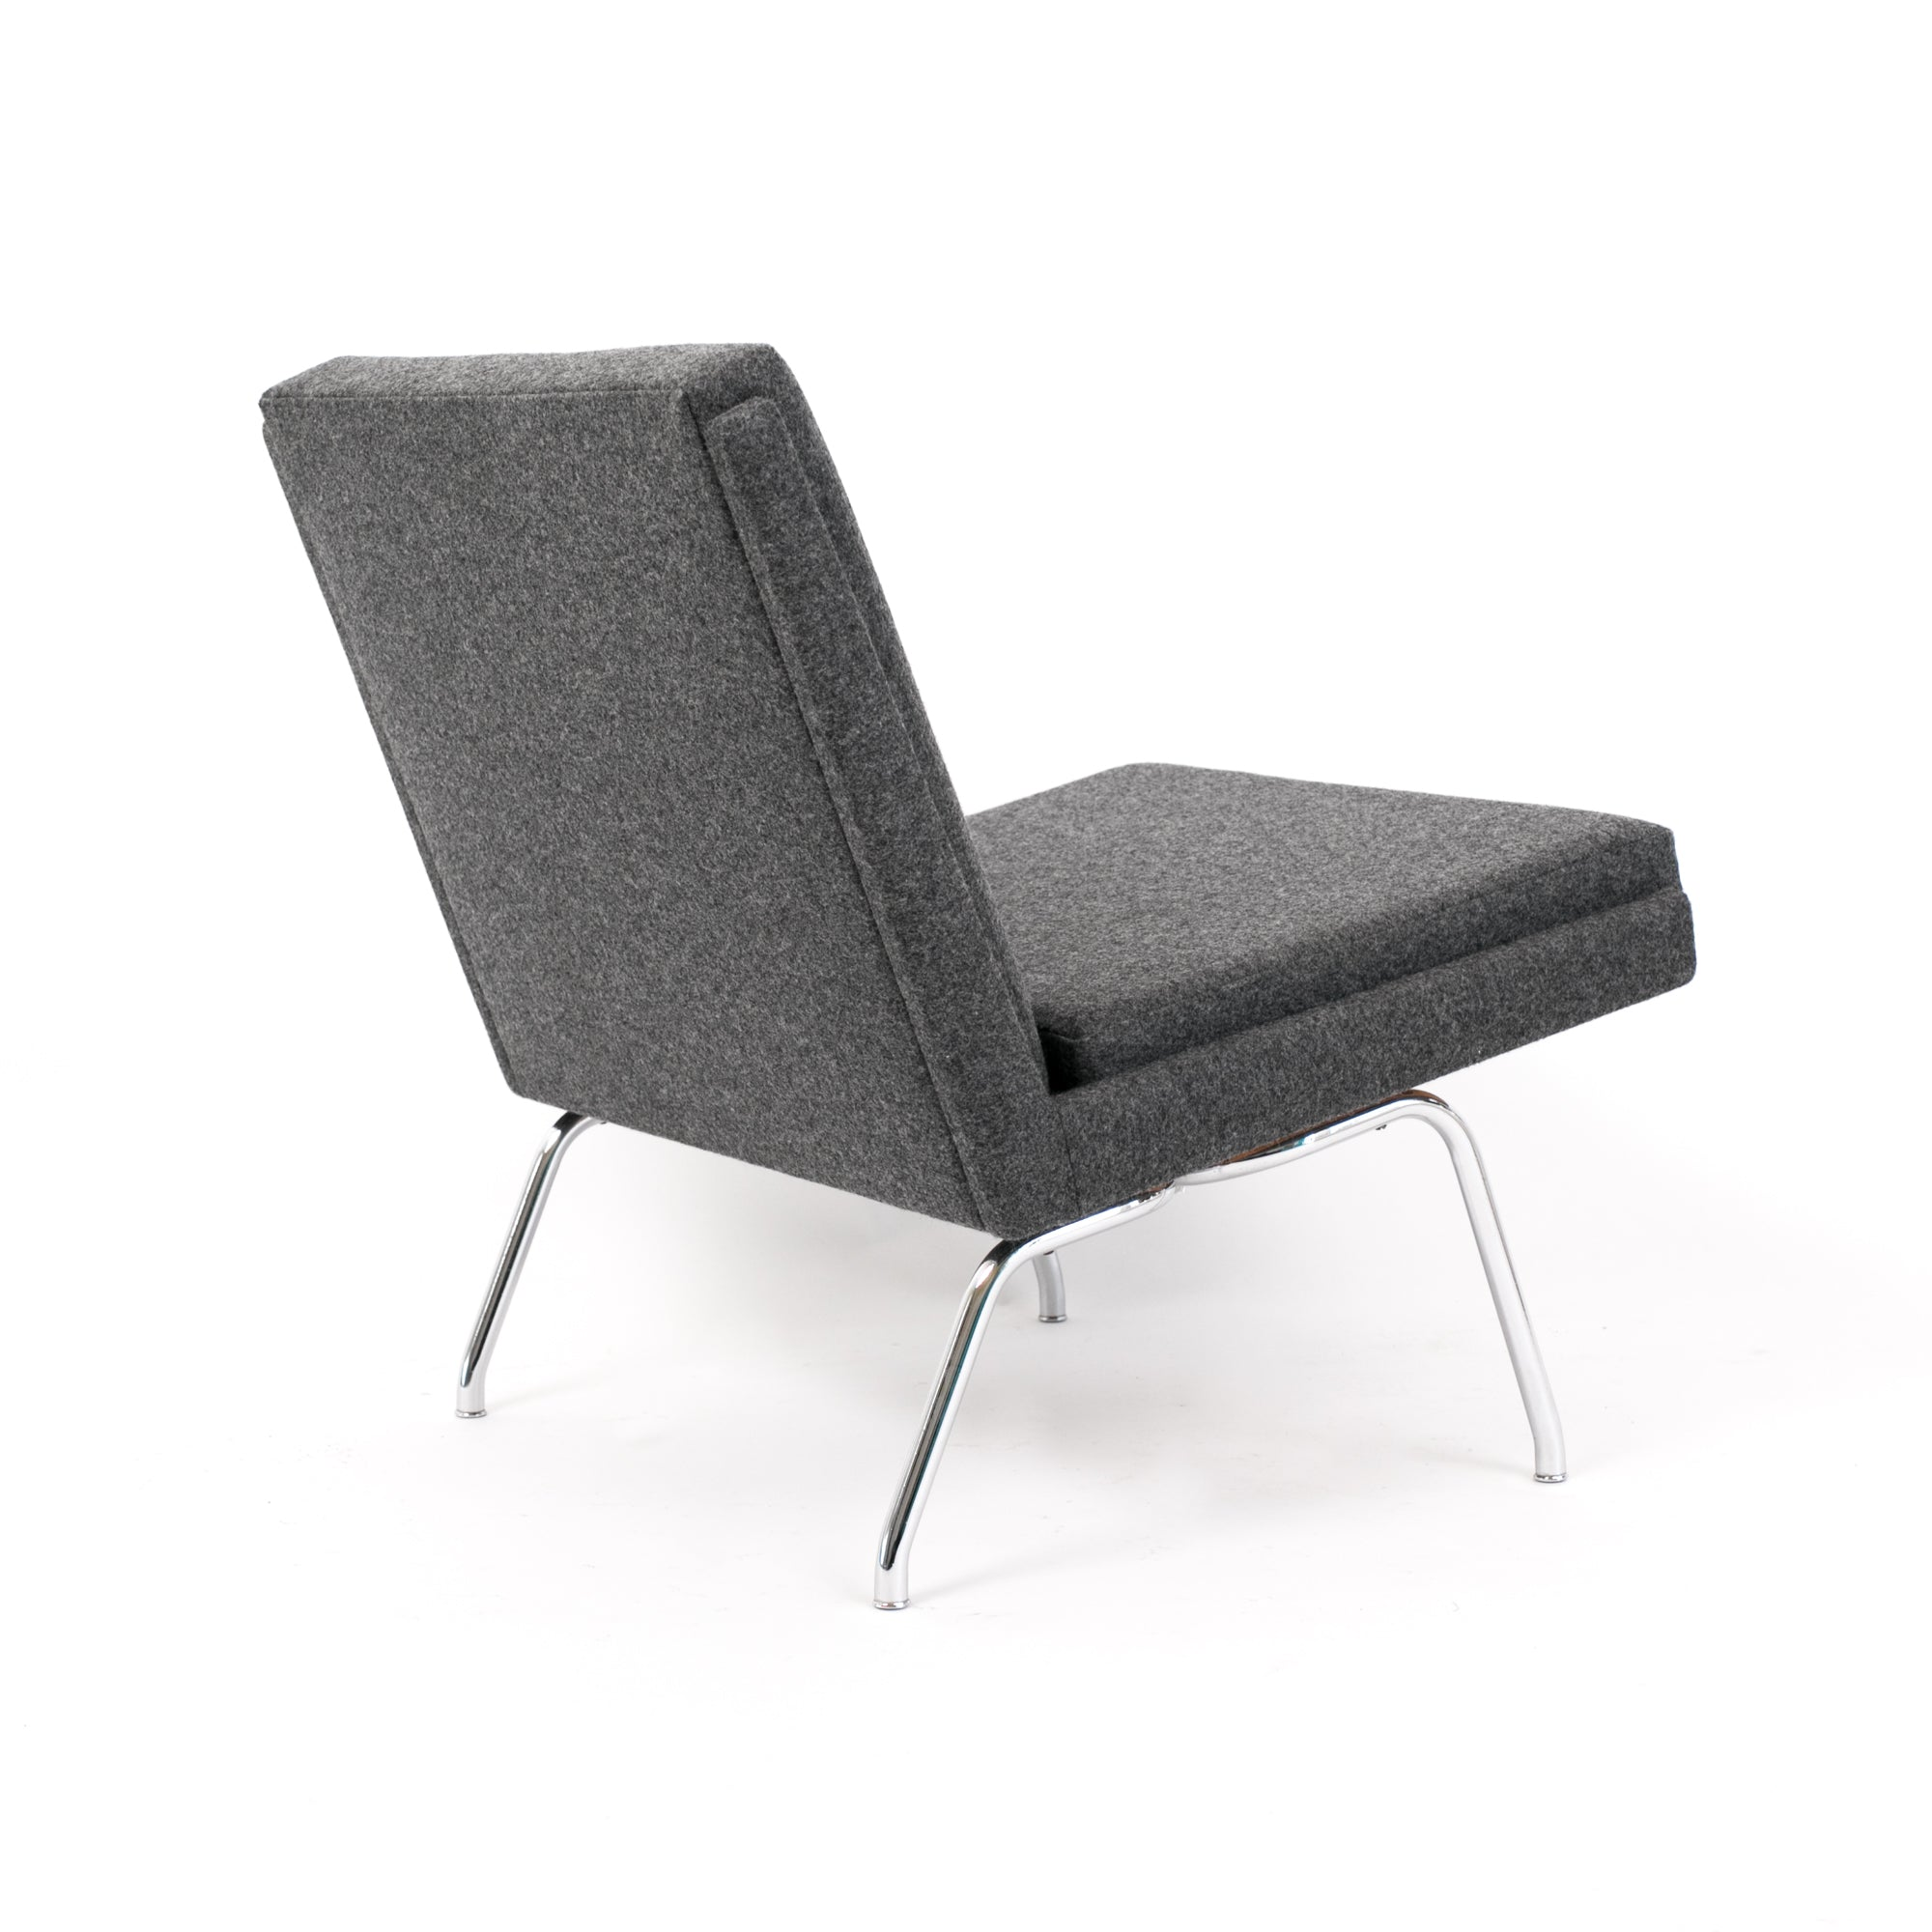 Hans Wegner AP 43 Small Lounge Chair For AP Stolen